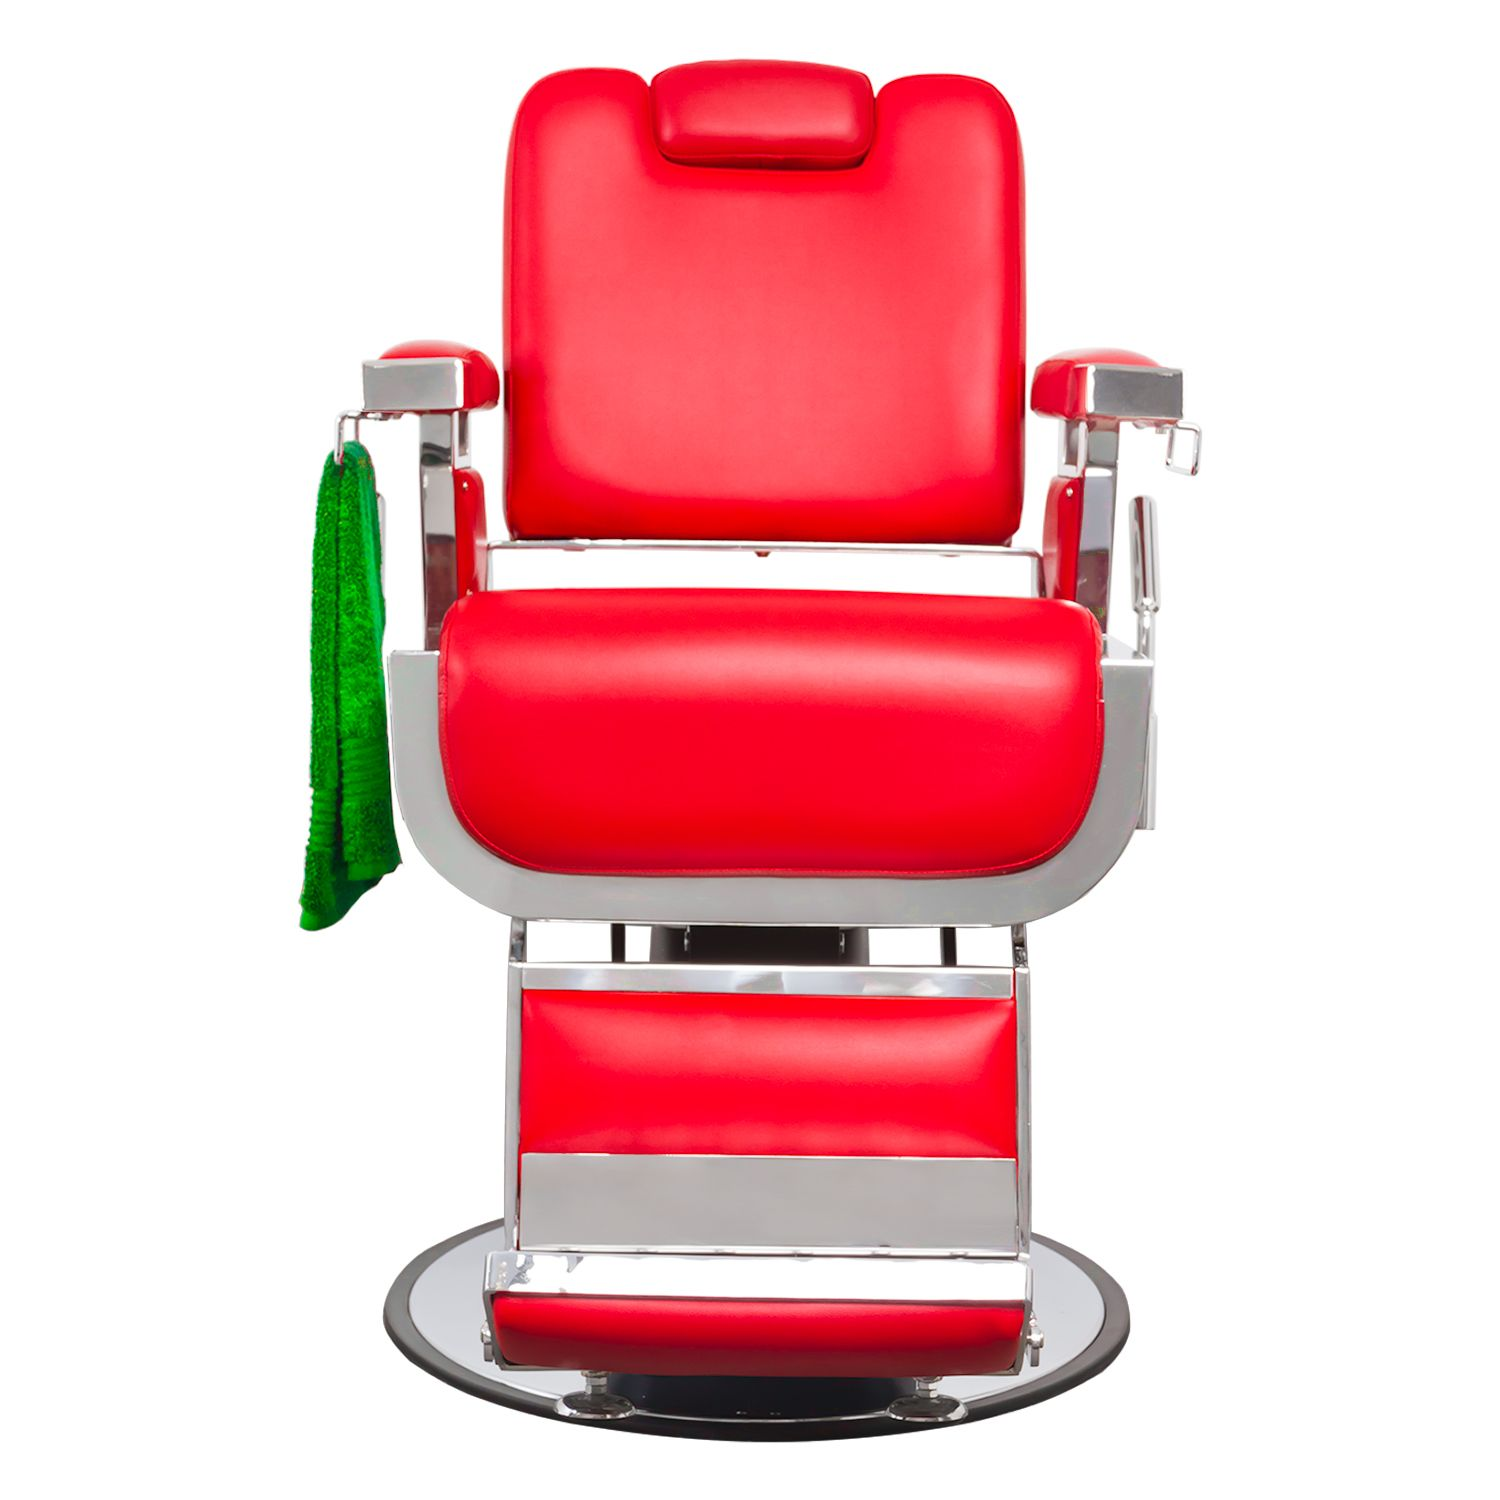 Pibbs 661 Seville Barber Shop Chair With Free Anti Fatigue Mat